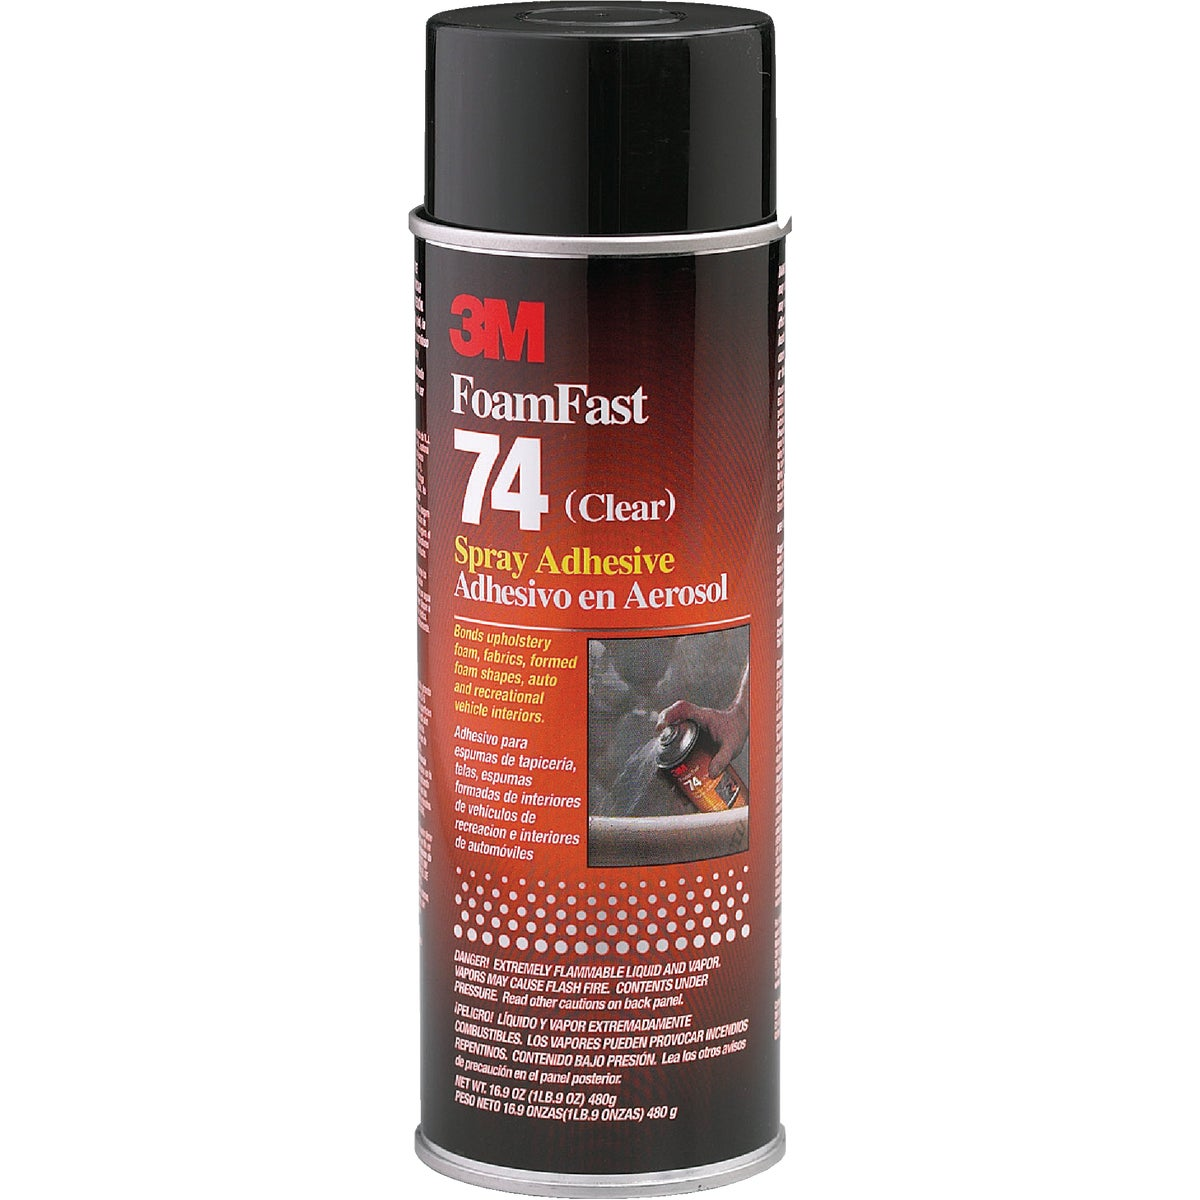 17OZ SPRAY ADHESIVE - 74 by 3m Co